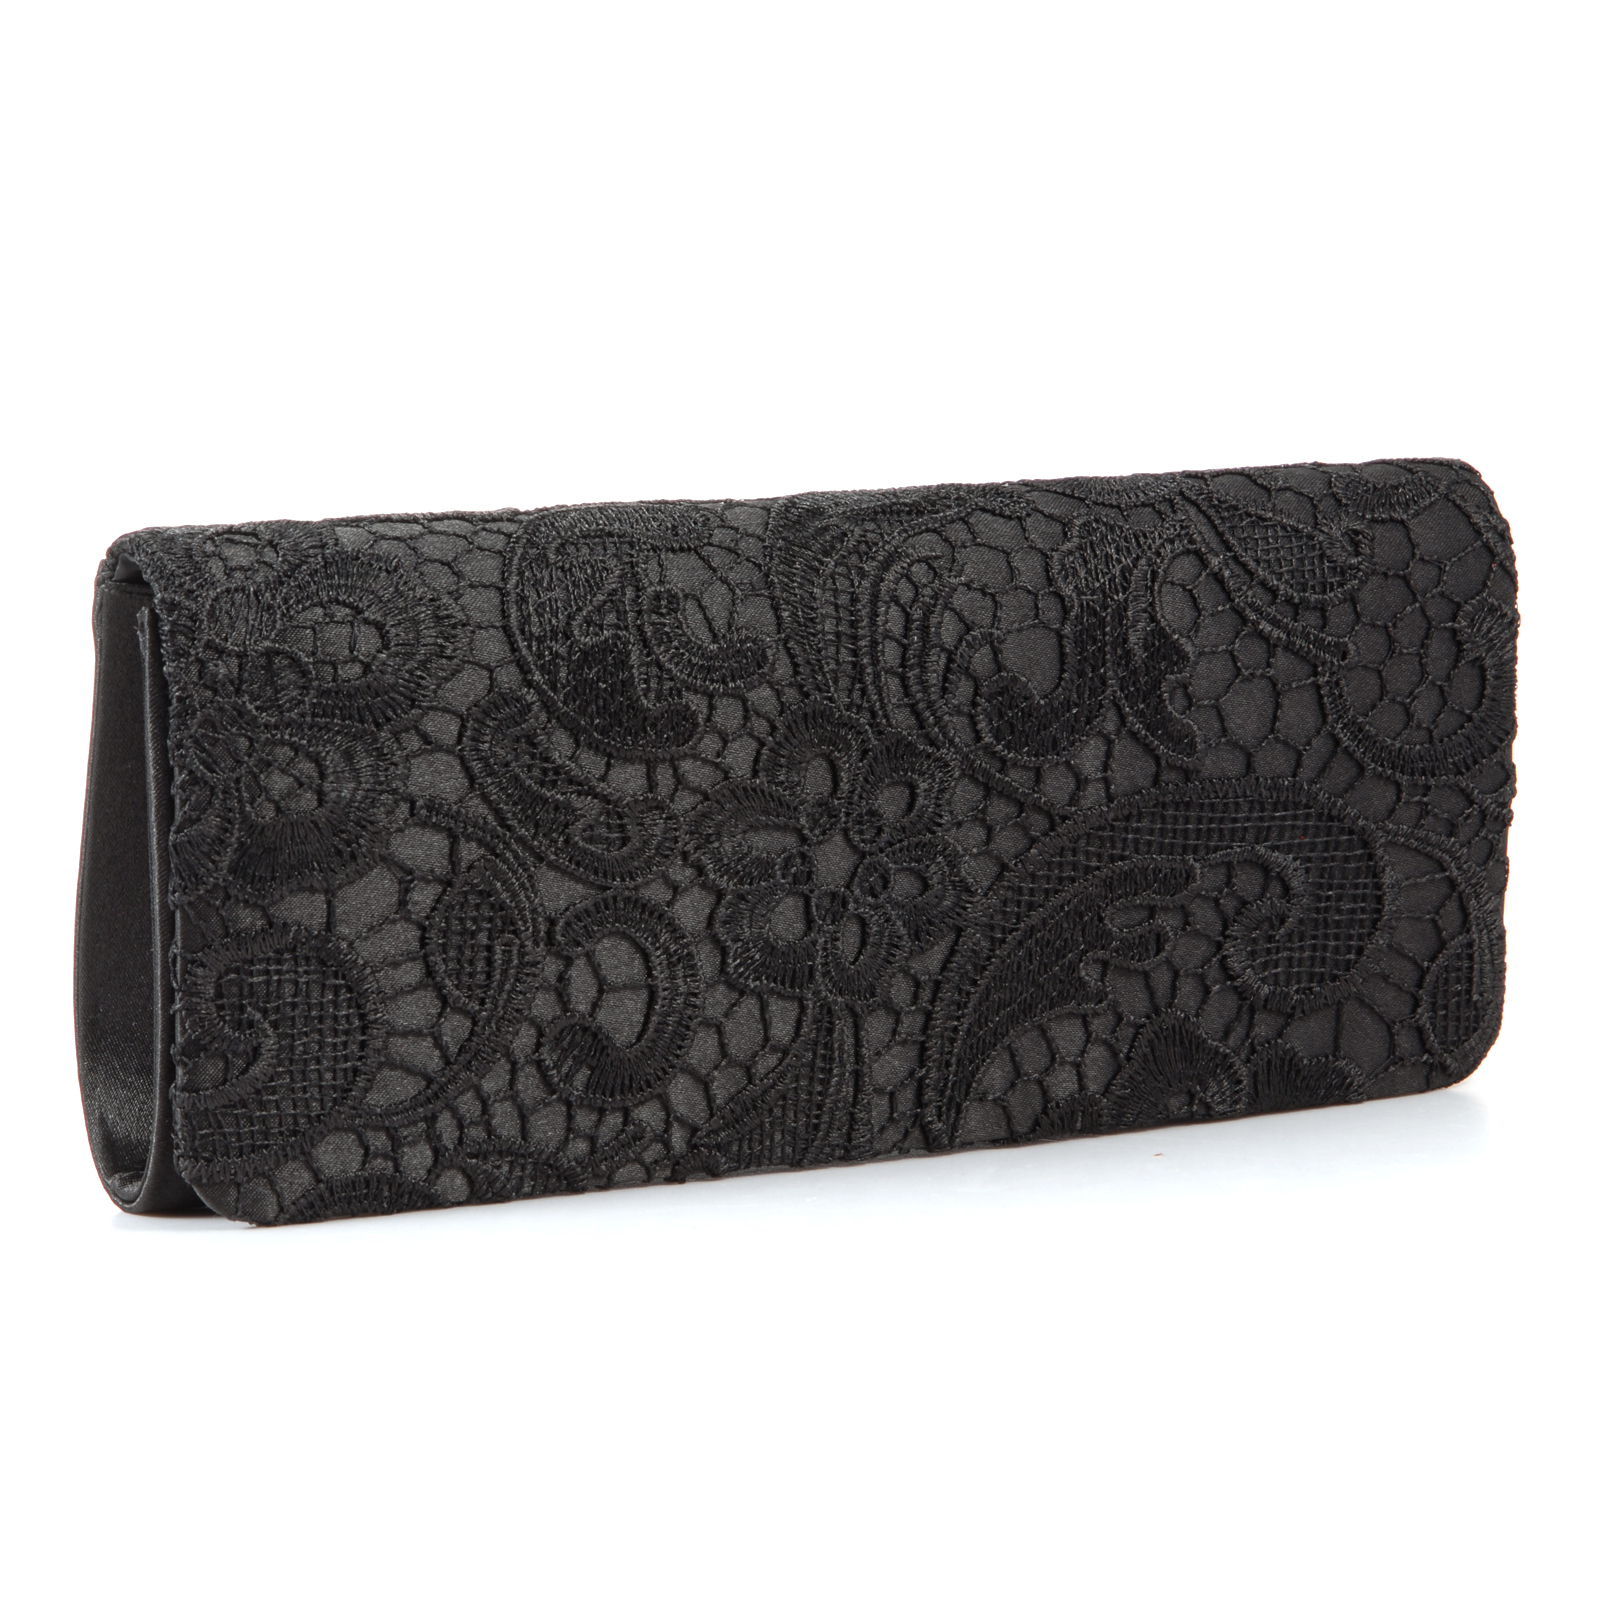 Blue Clutches & Evening Bags: vanduload.tk - Your Online Shop By Style Store! Get 5% in rewards with Club O!